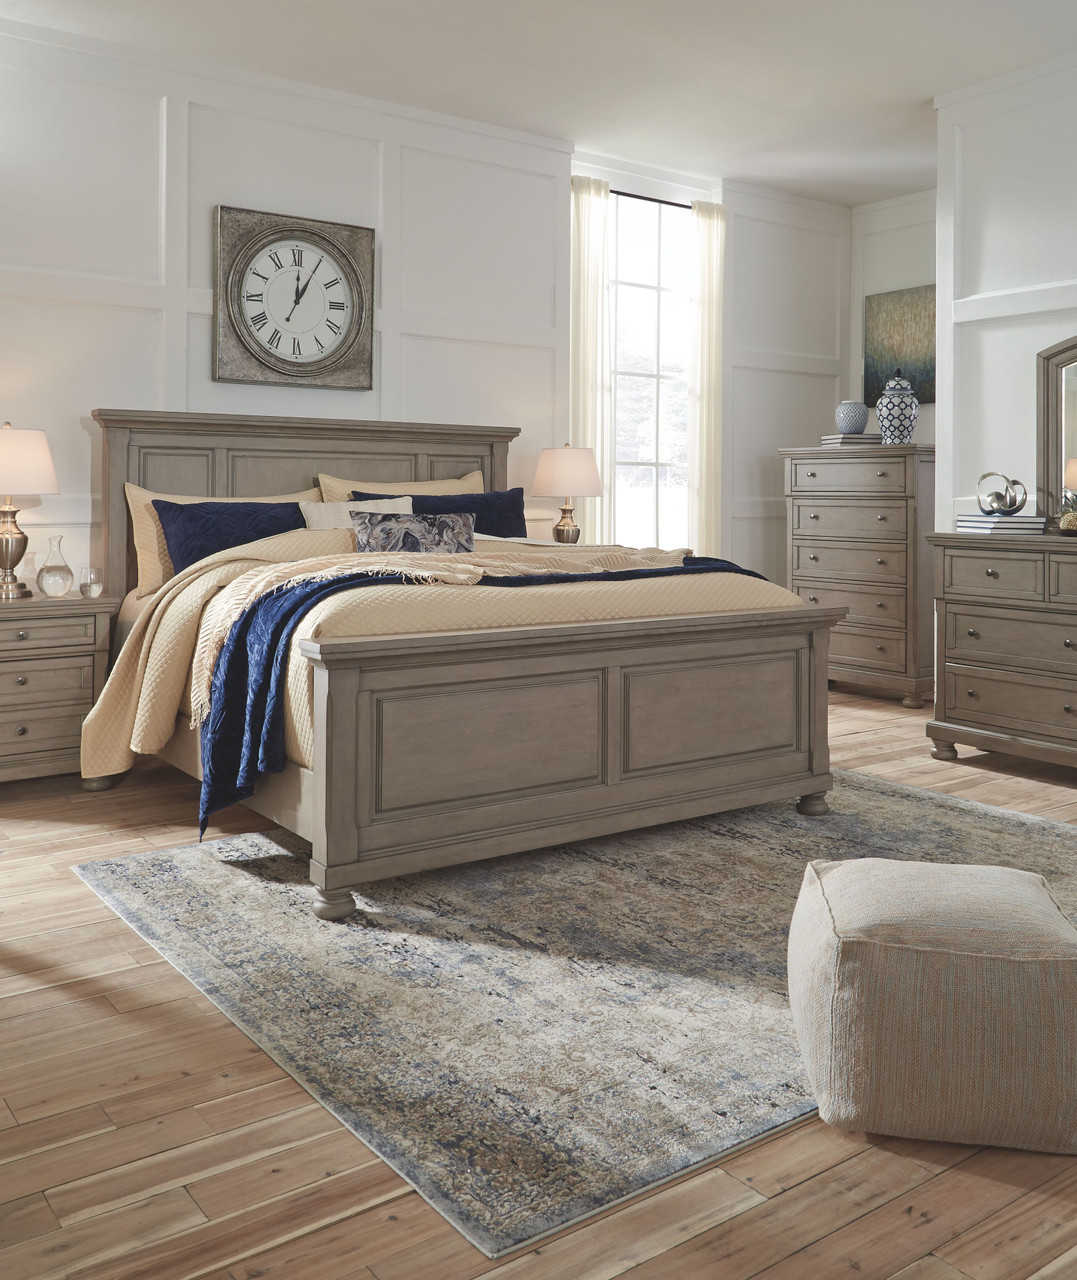 The Lettner Light Gray 7 Pc Dresser Mirror King Panel Bed 2 Nightstands Available At Royal Star Furniture Serving St Paul Mn